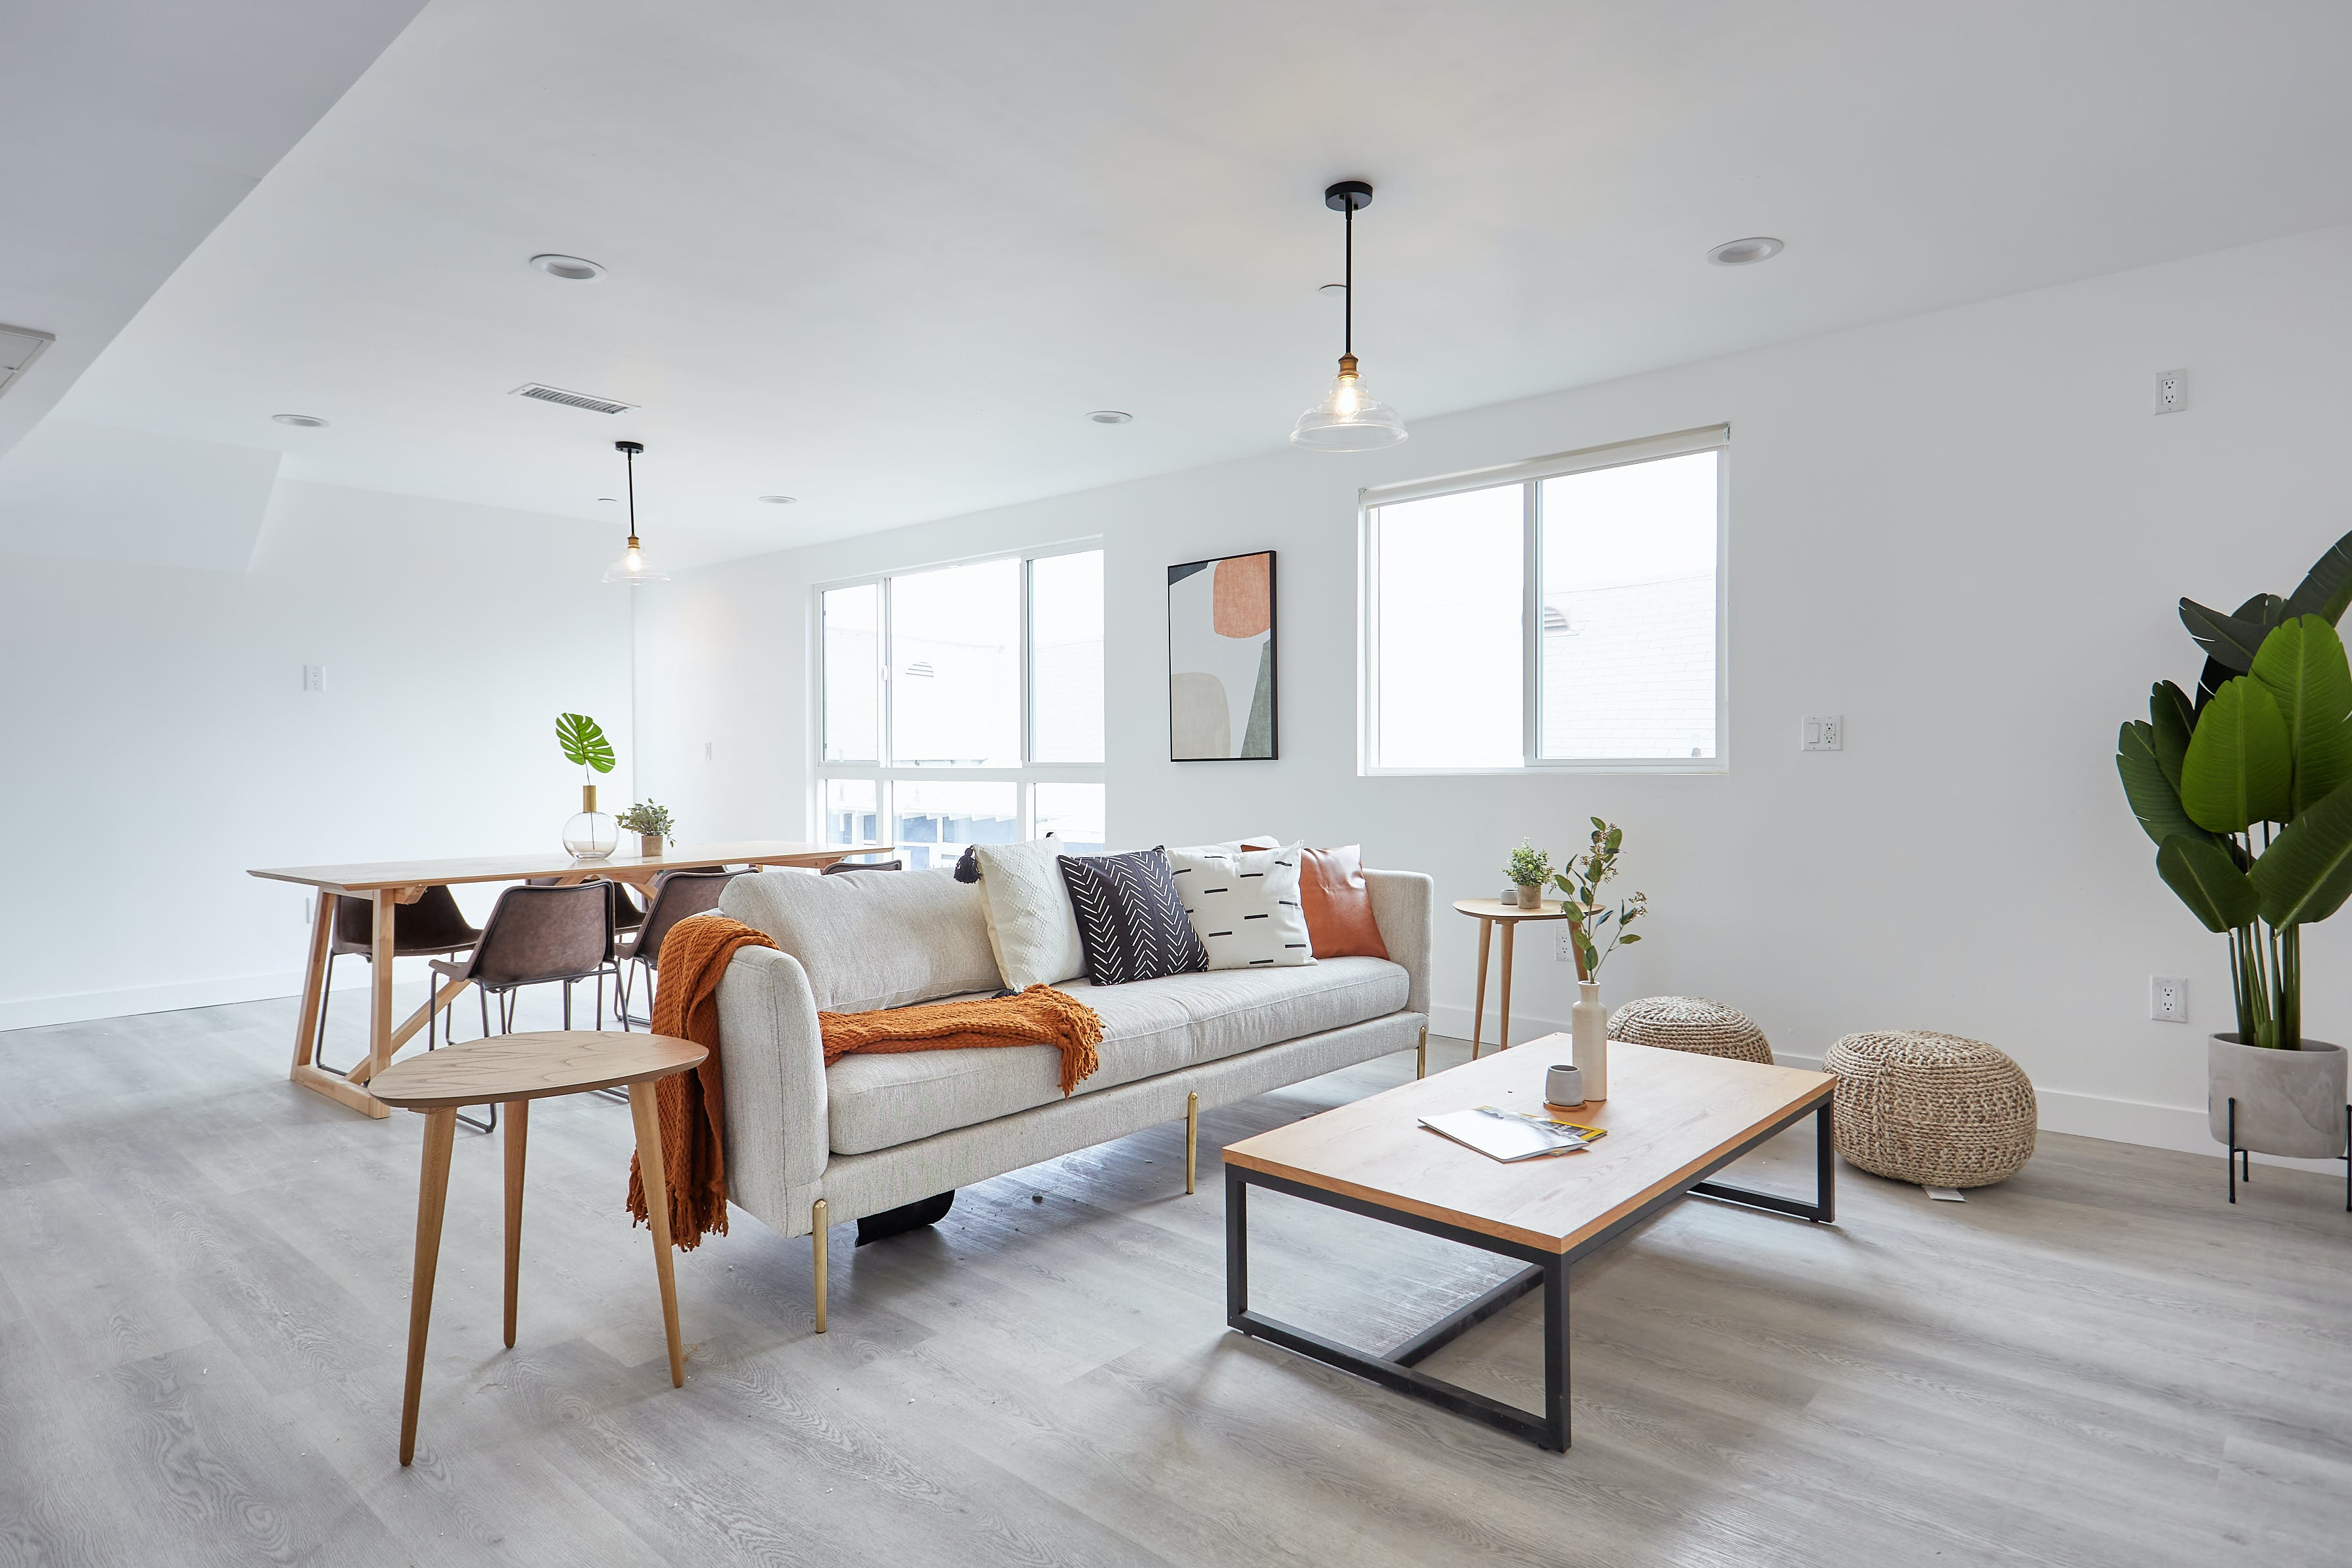 14 Residents | South Los Angeles | Brand New House w/ Workspace